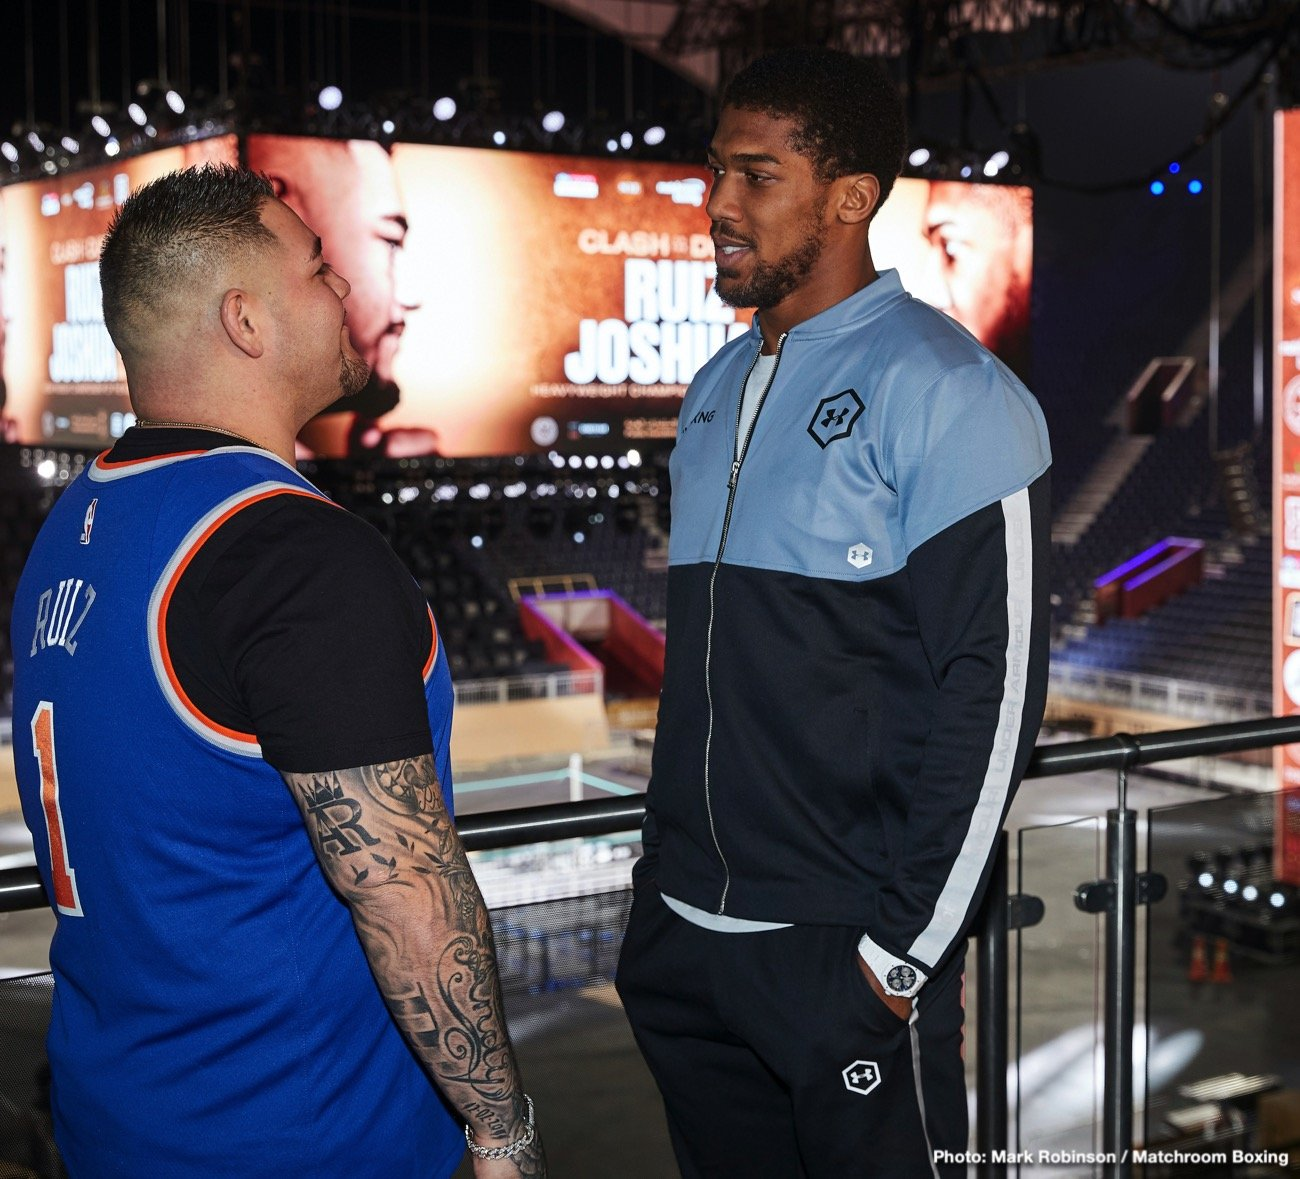 Andy Ruiz, Anthony Joshua - Coming up on December 7, 2019 boxing fans will be treated to the highly anticipated rematch between unified IBF/WBA/WBO heavyweight world champion Andy Ruiz Jr and former champion Anthony Joshua.